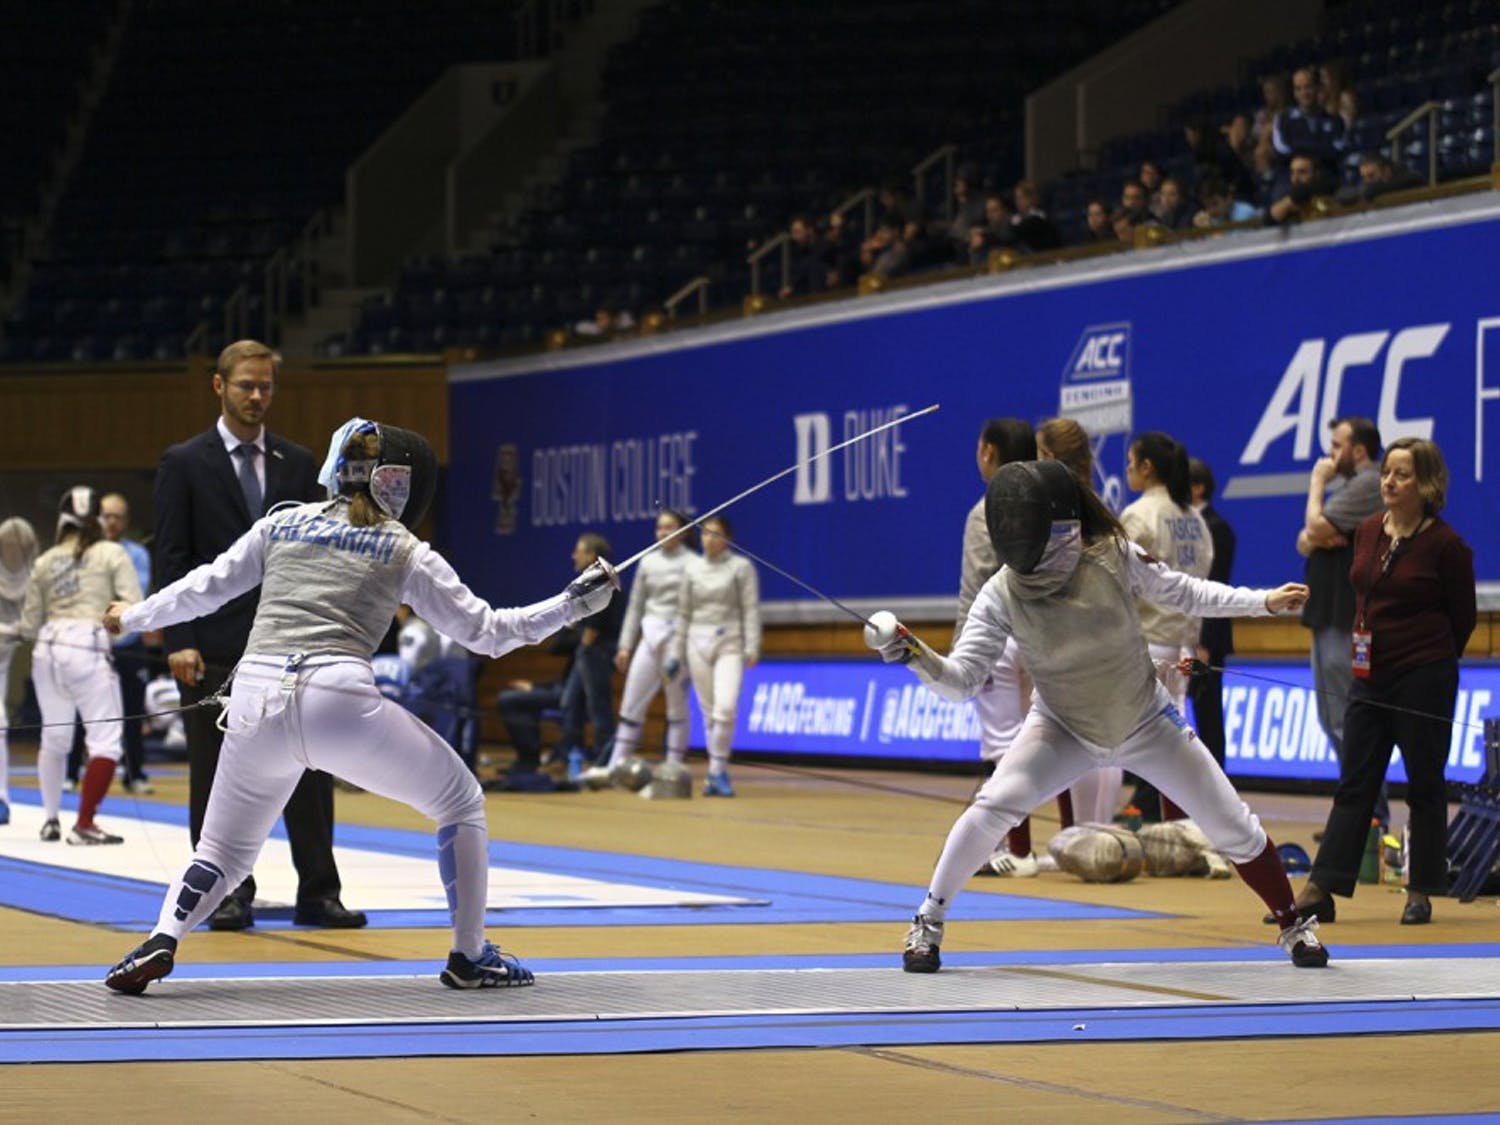 Amanda Lalezarian (UNC) preparing to lunge during a match. The UNC Women's Team placed 3rd at the ACC Fencing Tournament on Sunday, February 26, 2017.`